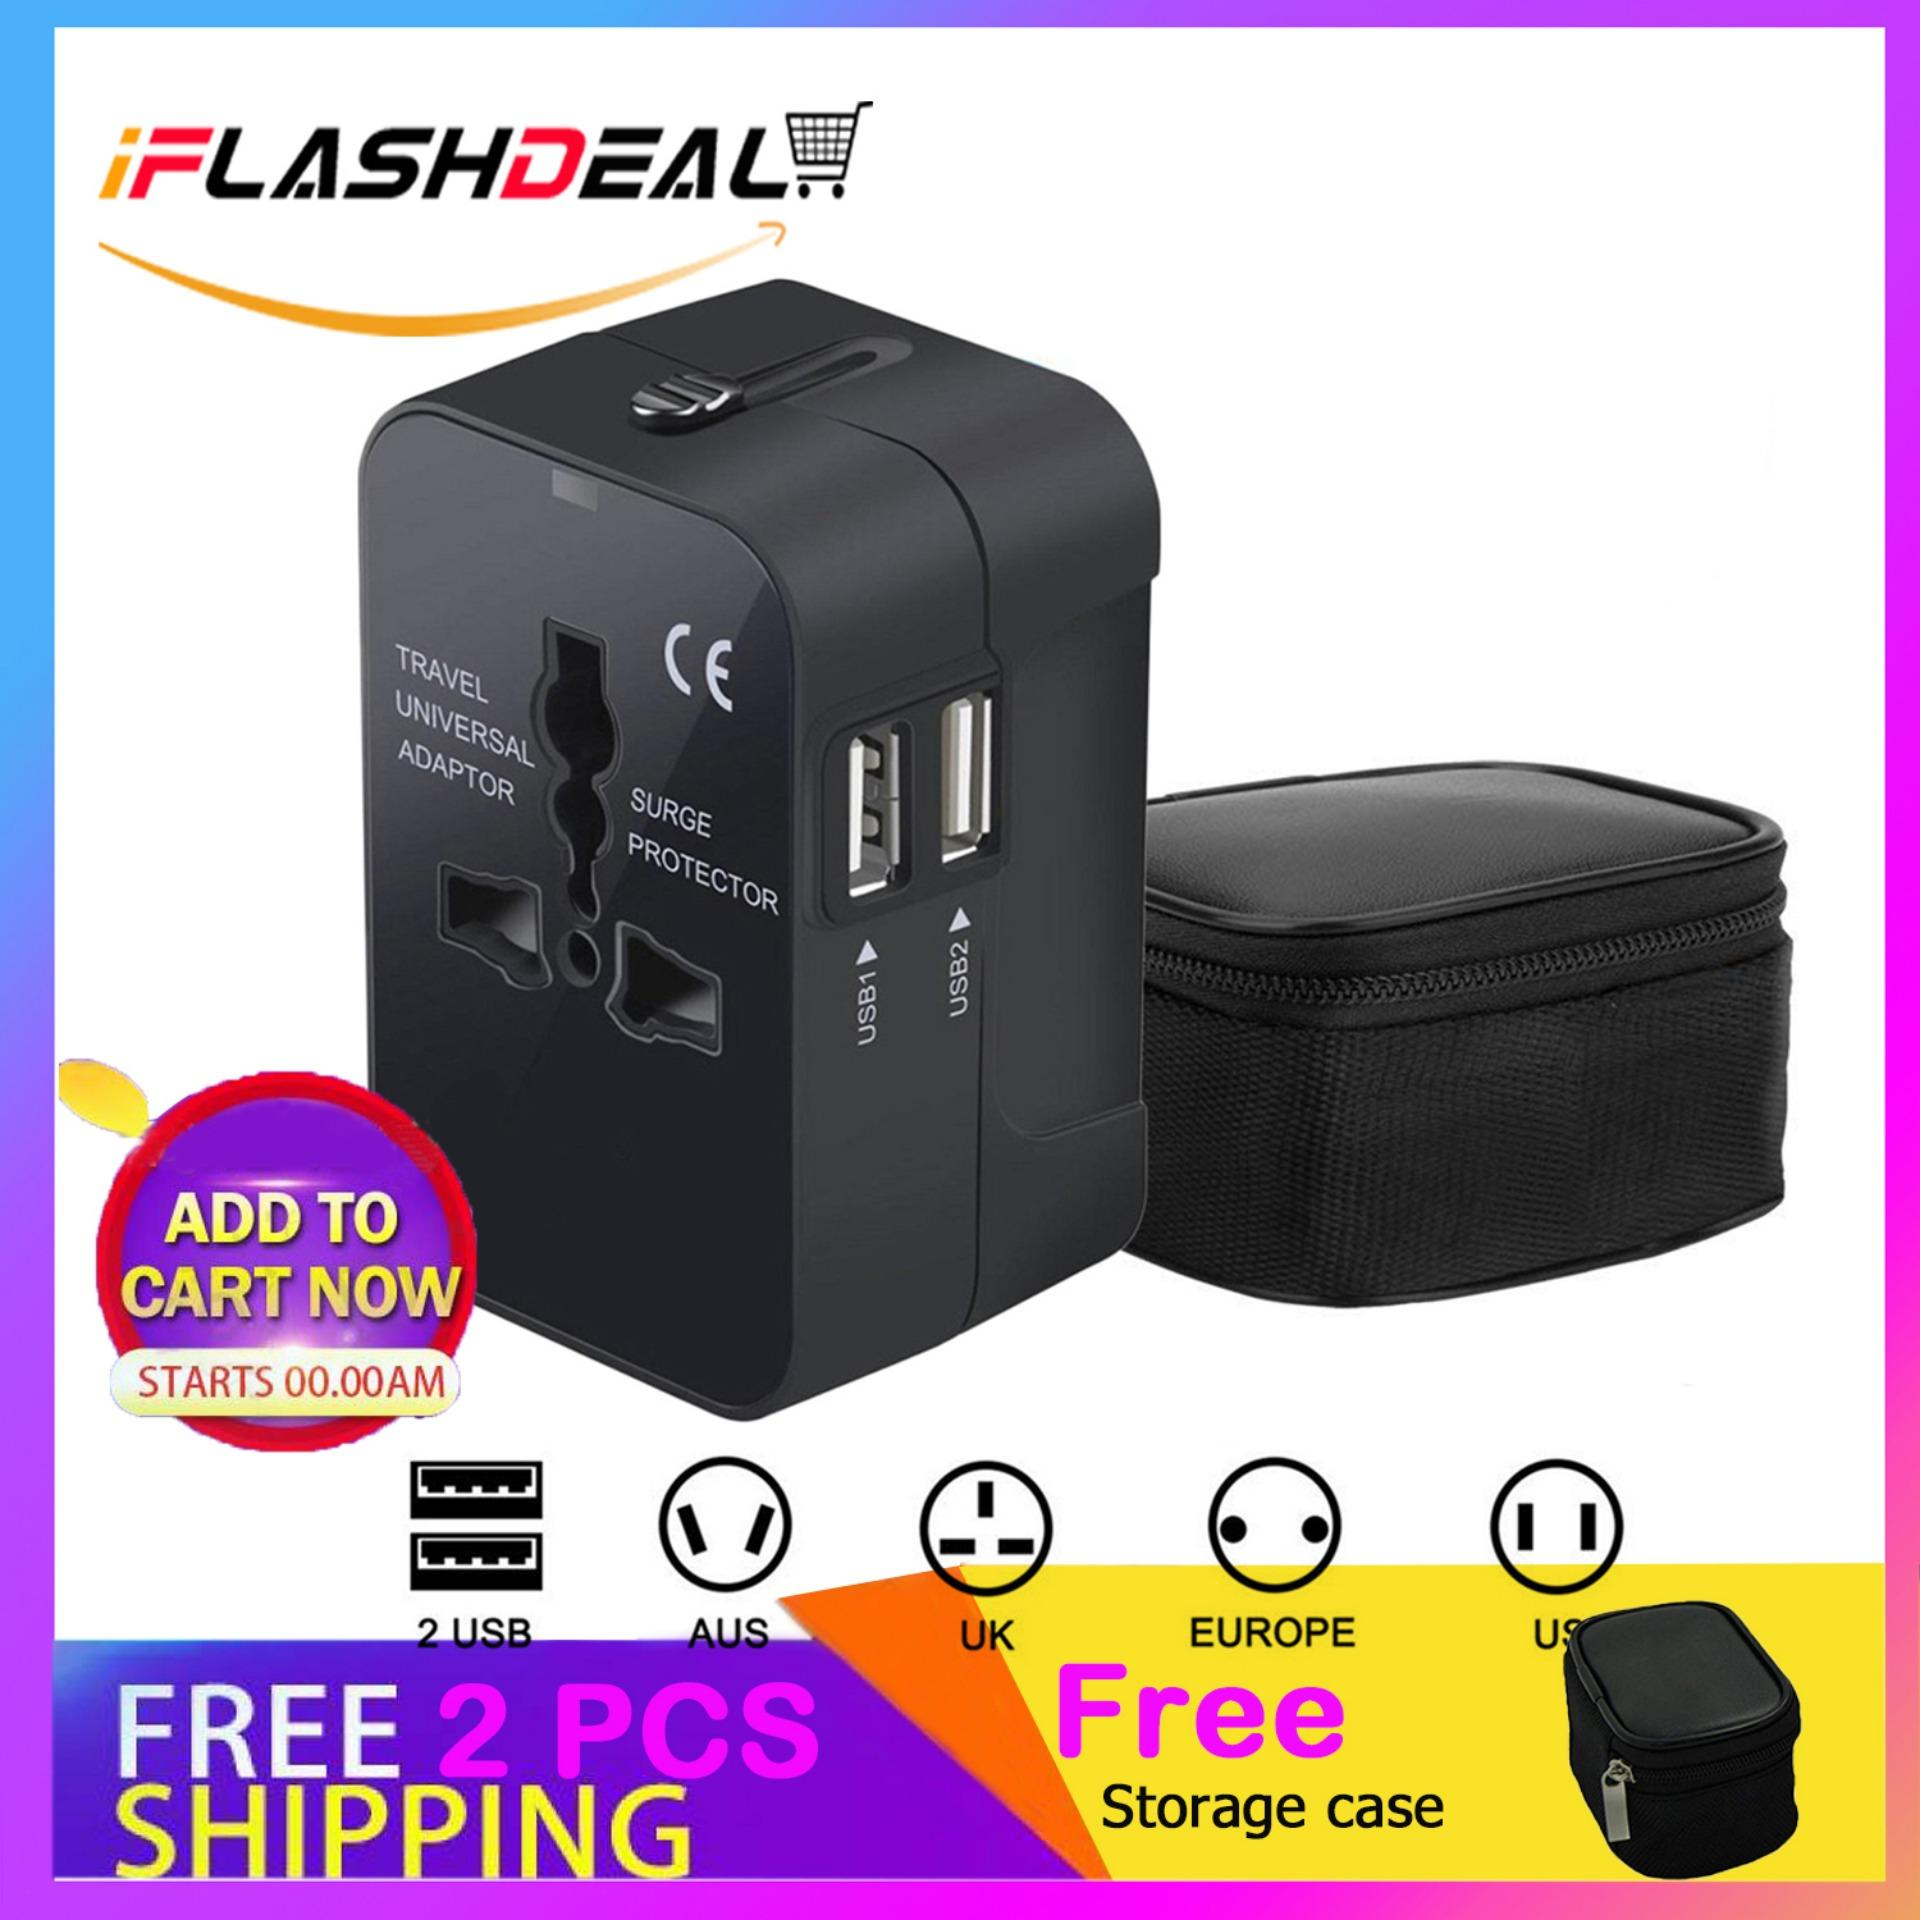 Iflashdeal Universal International Travel Adapter / Power Plug / Charger In All In One - Black By Iflashdeal.